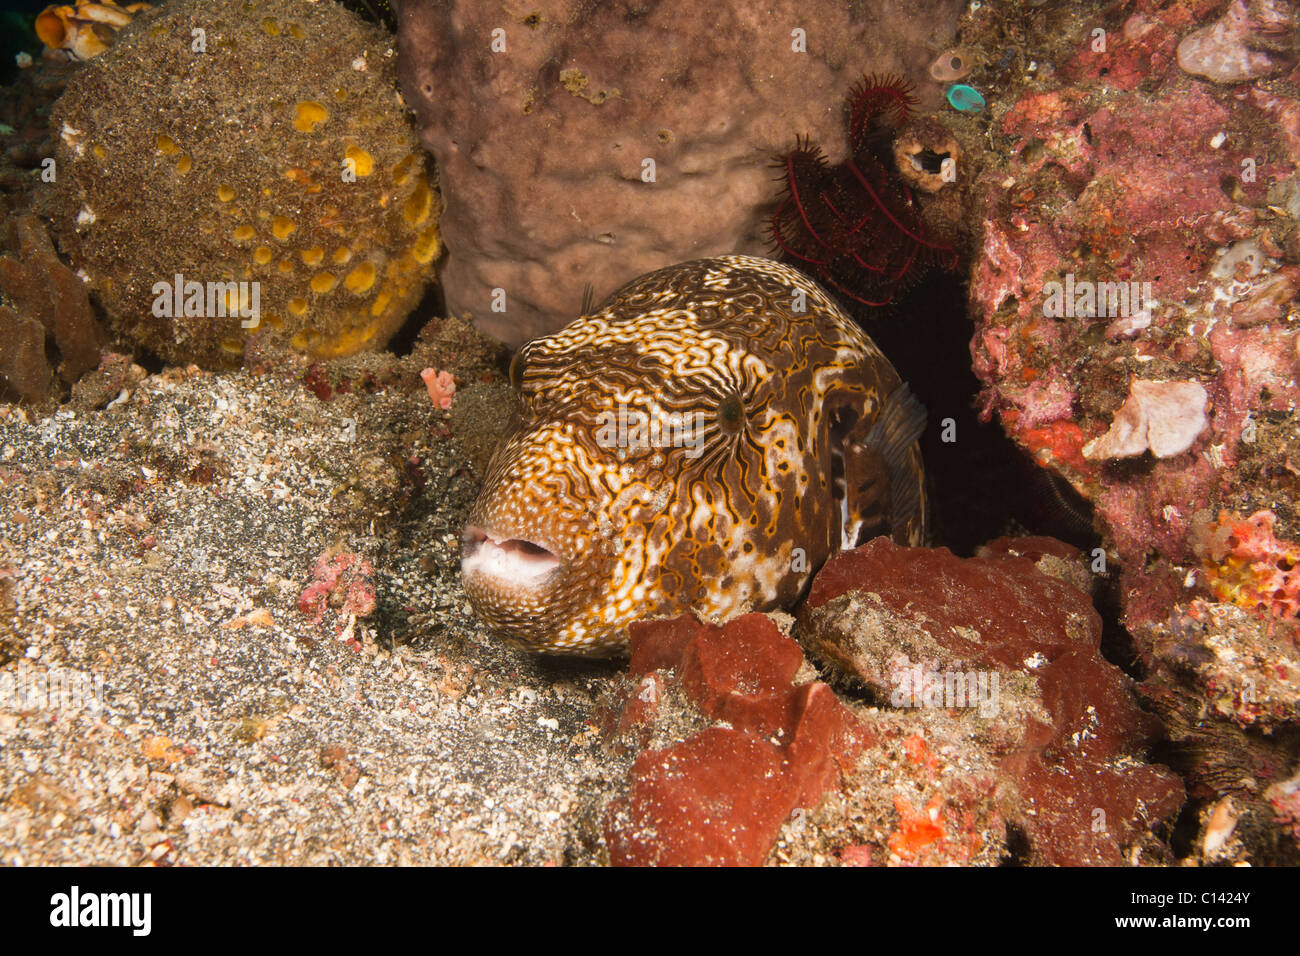 Map Puffer (Arothron mappa) on a tropical coral reef in the Lembeh Strait in North Sulawesi, Indonesia. Stock Photo